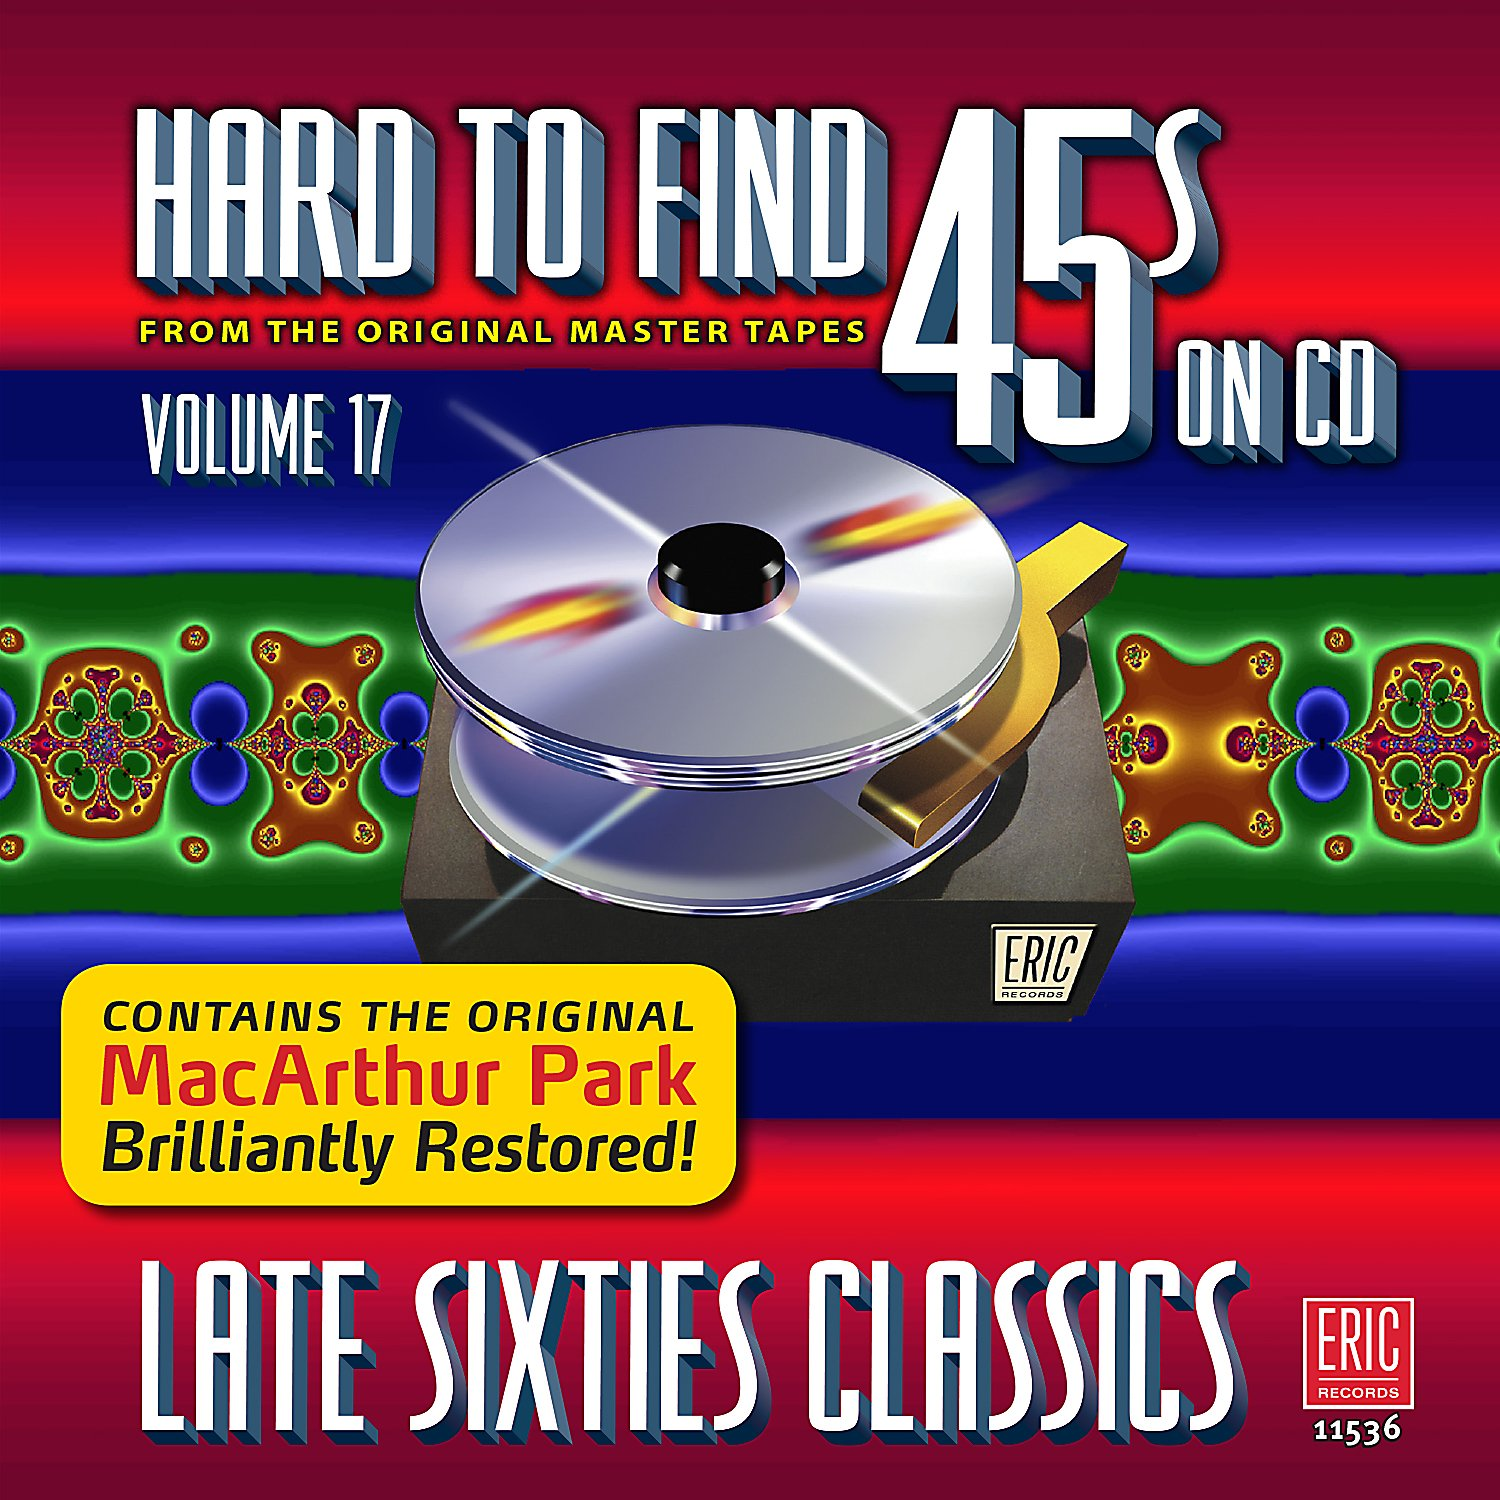 Hard To Find 45s On CD, Volume 17 - Late Sixties Classics by Eric